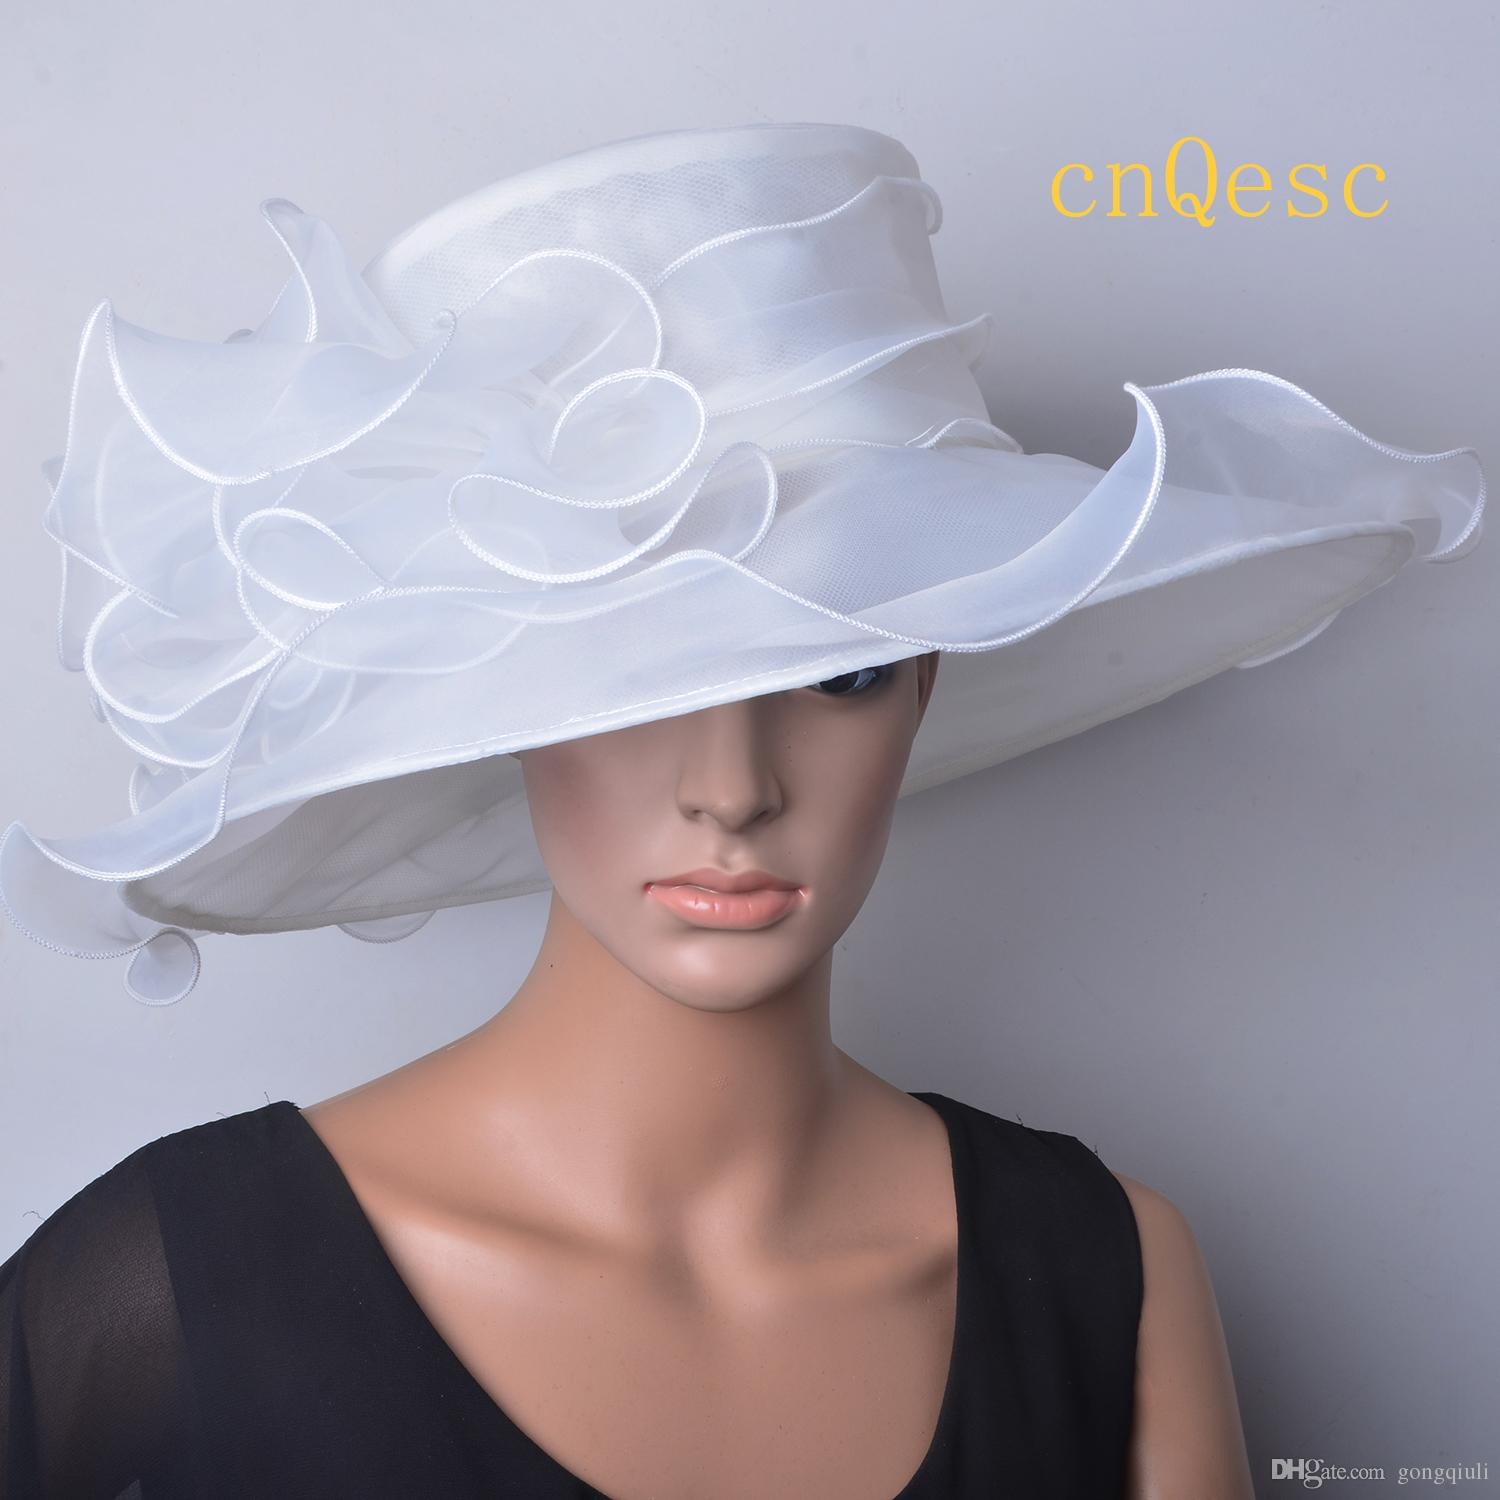 Cappello in organza avorio Cappello donna Derby Kentucy Cappello da sposa matrimonio chiesa derby.brim larghezza 13,5 cm.